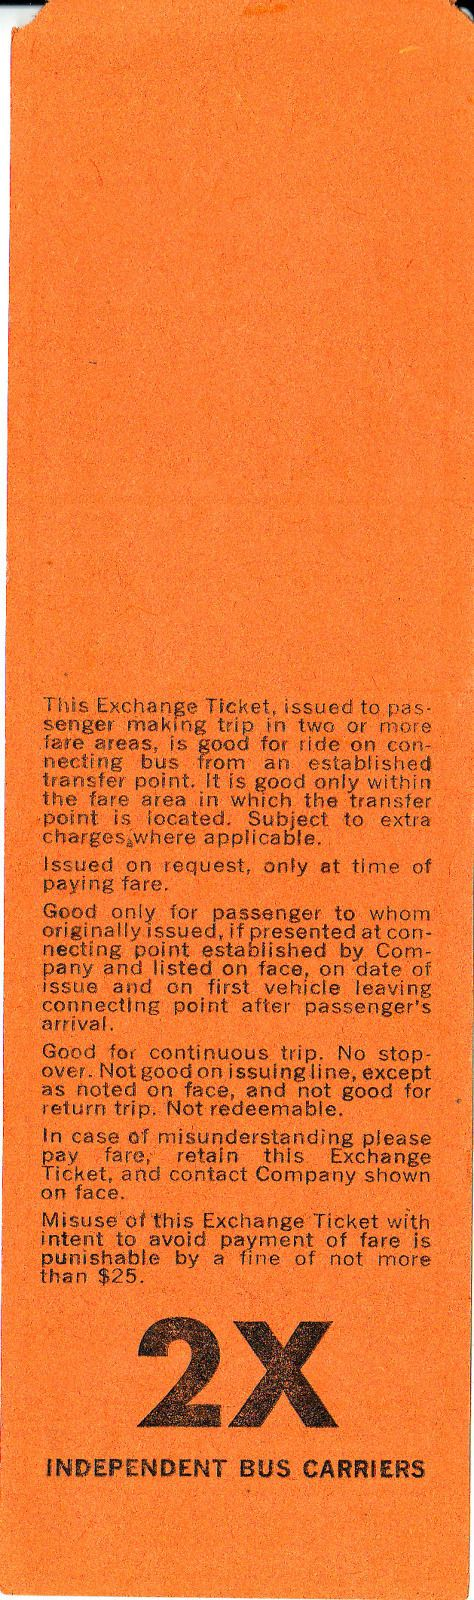 Back of bus transfer of William Seidler, one of the independent carriers exchanging transfers with Public Service Coordinated Transport of New Jersey (1960s)